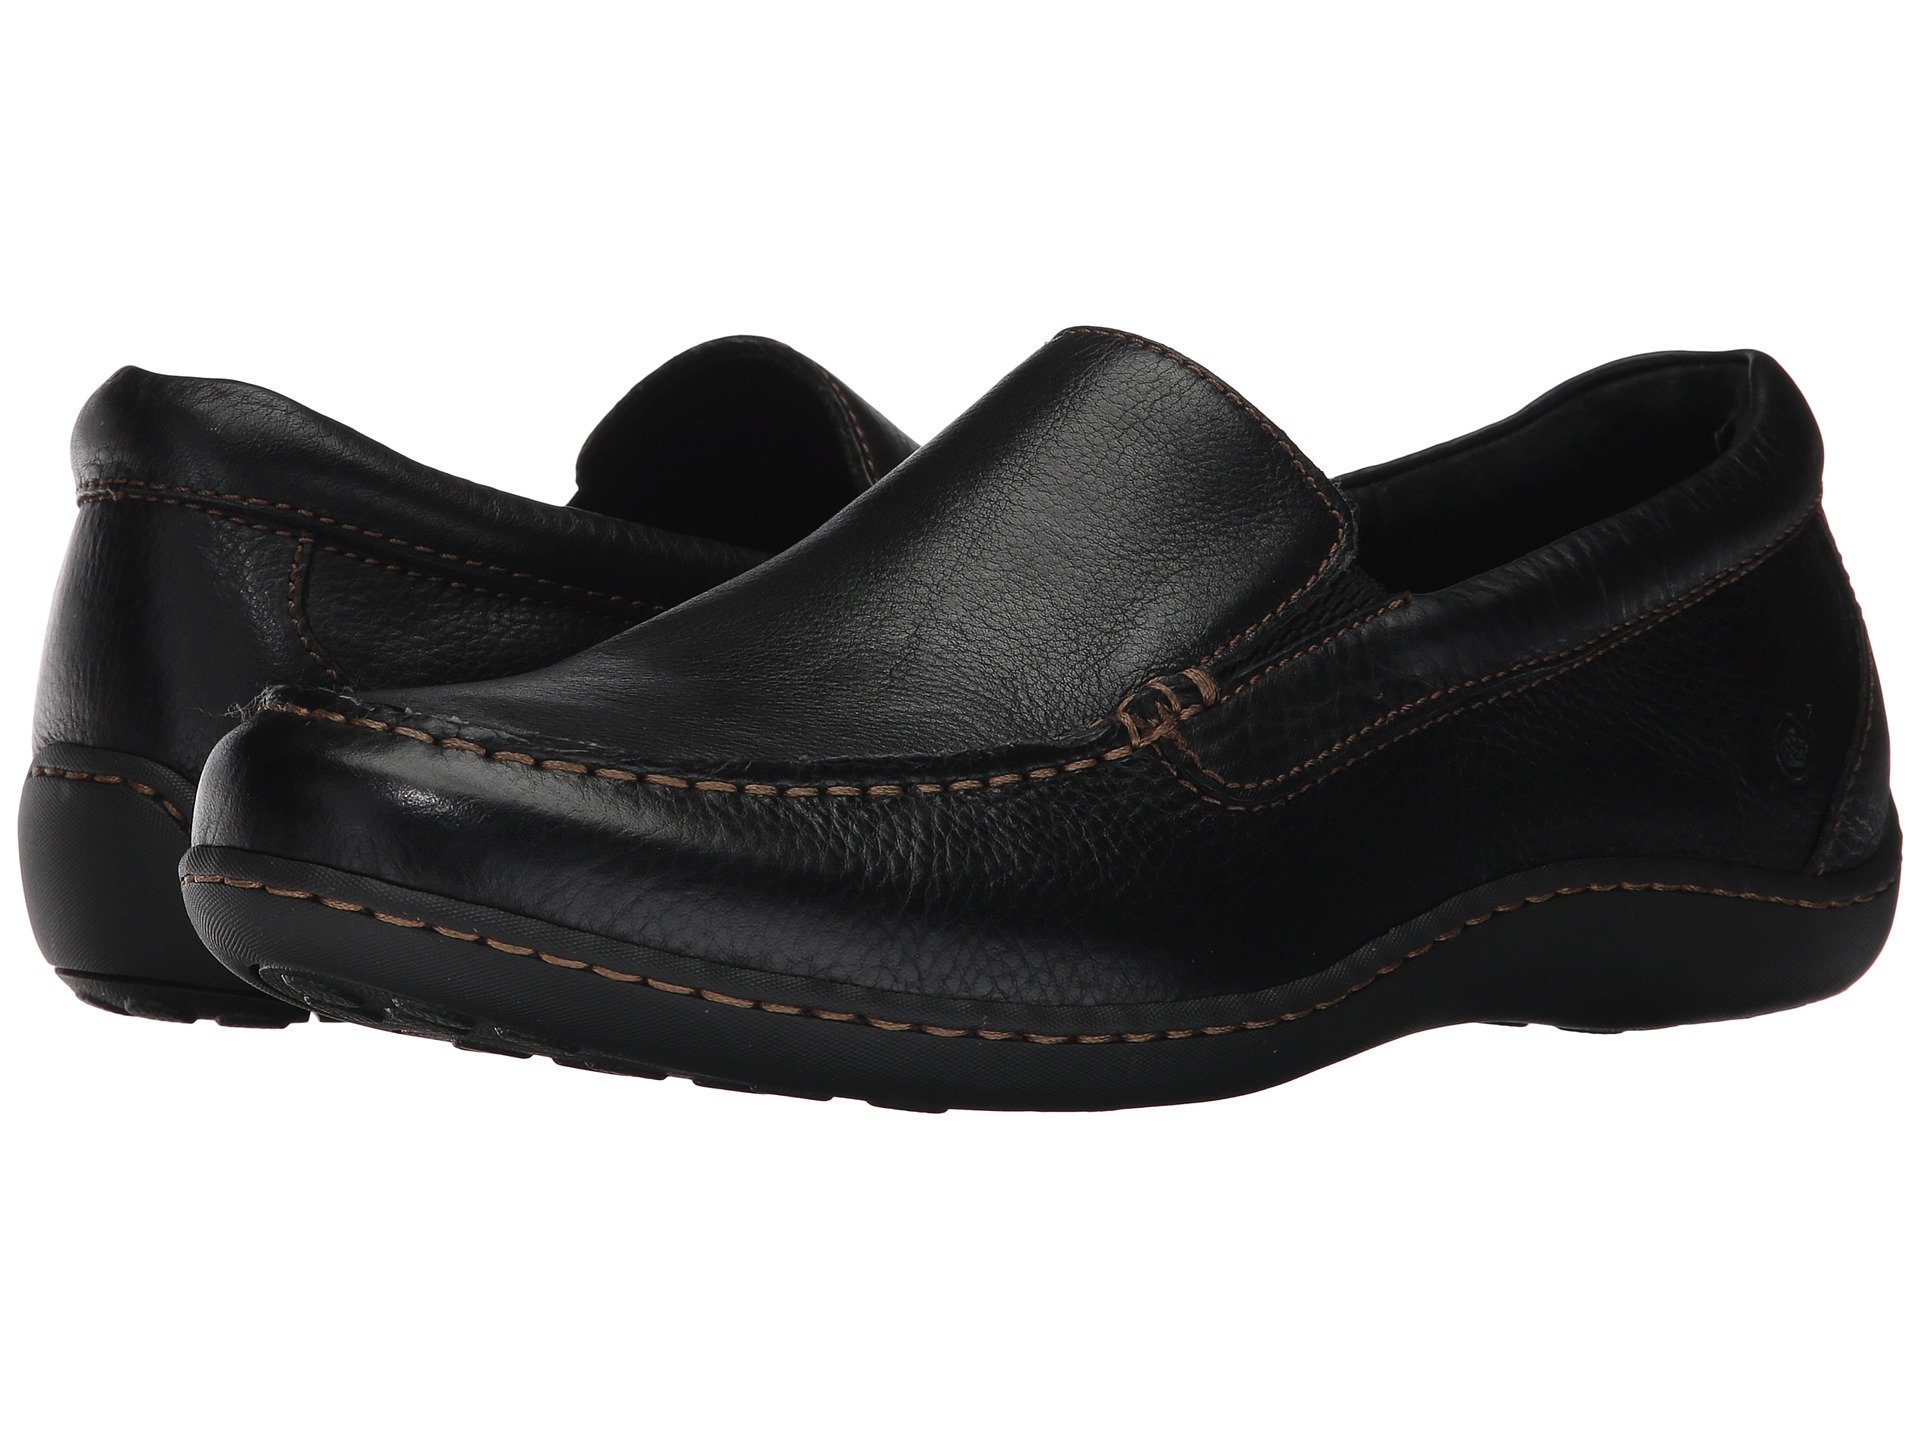 01c95ccc556 Men s Born Loafers + FREE SHIPPING